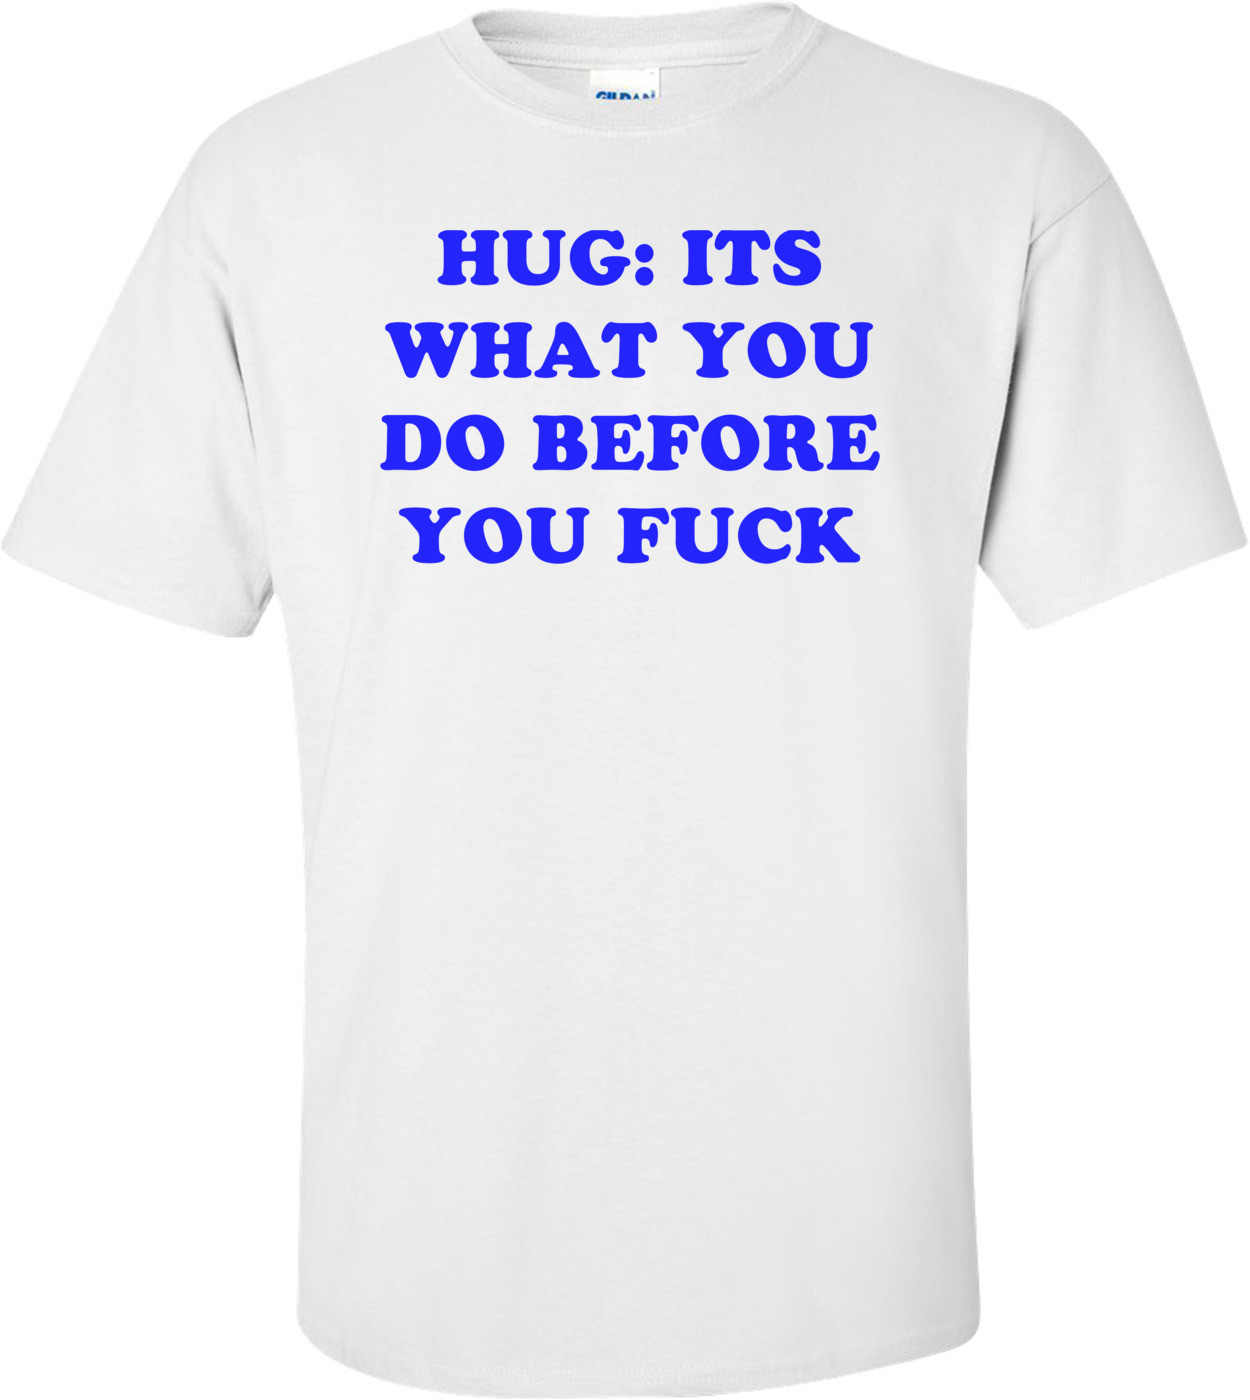 HUG: ITS WHAT YOU DO BEFORE YOU FUCK Shirt